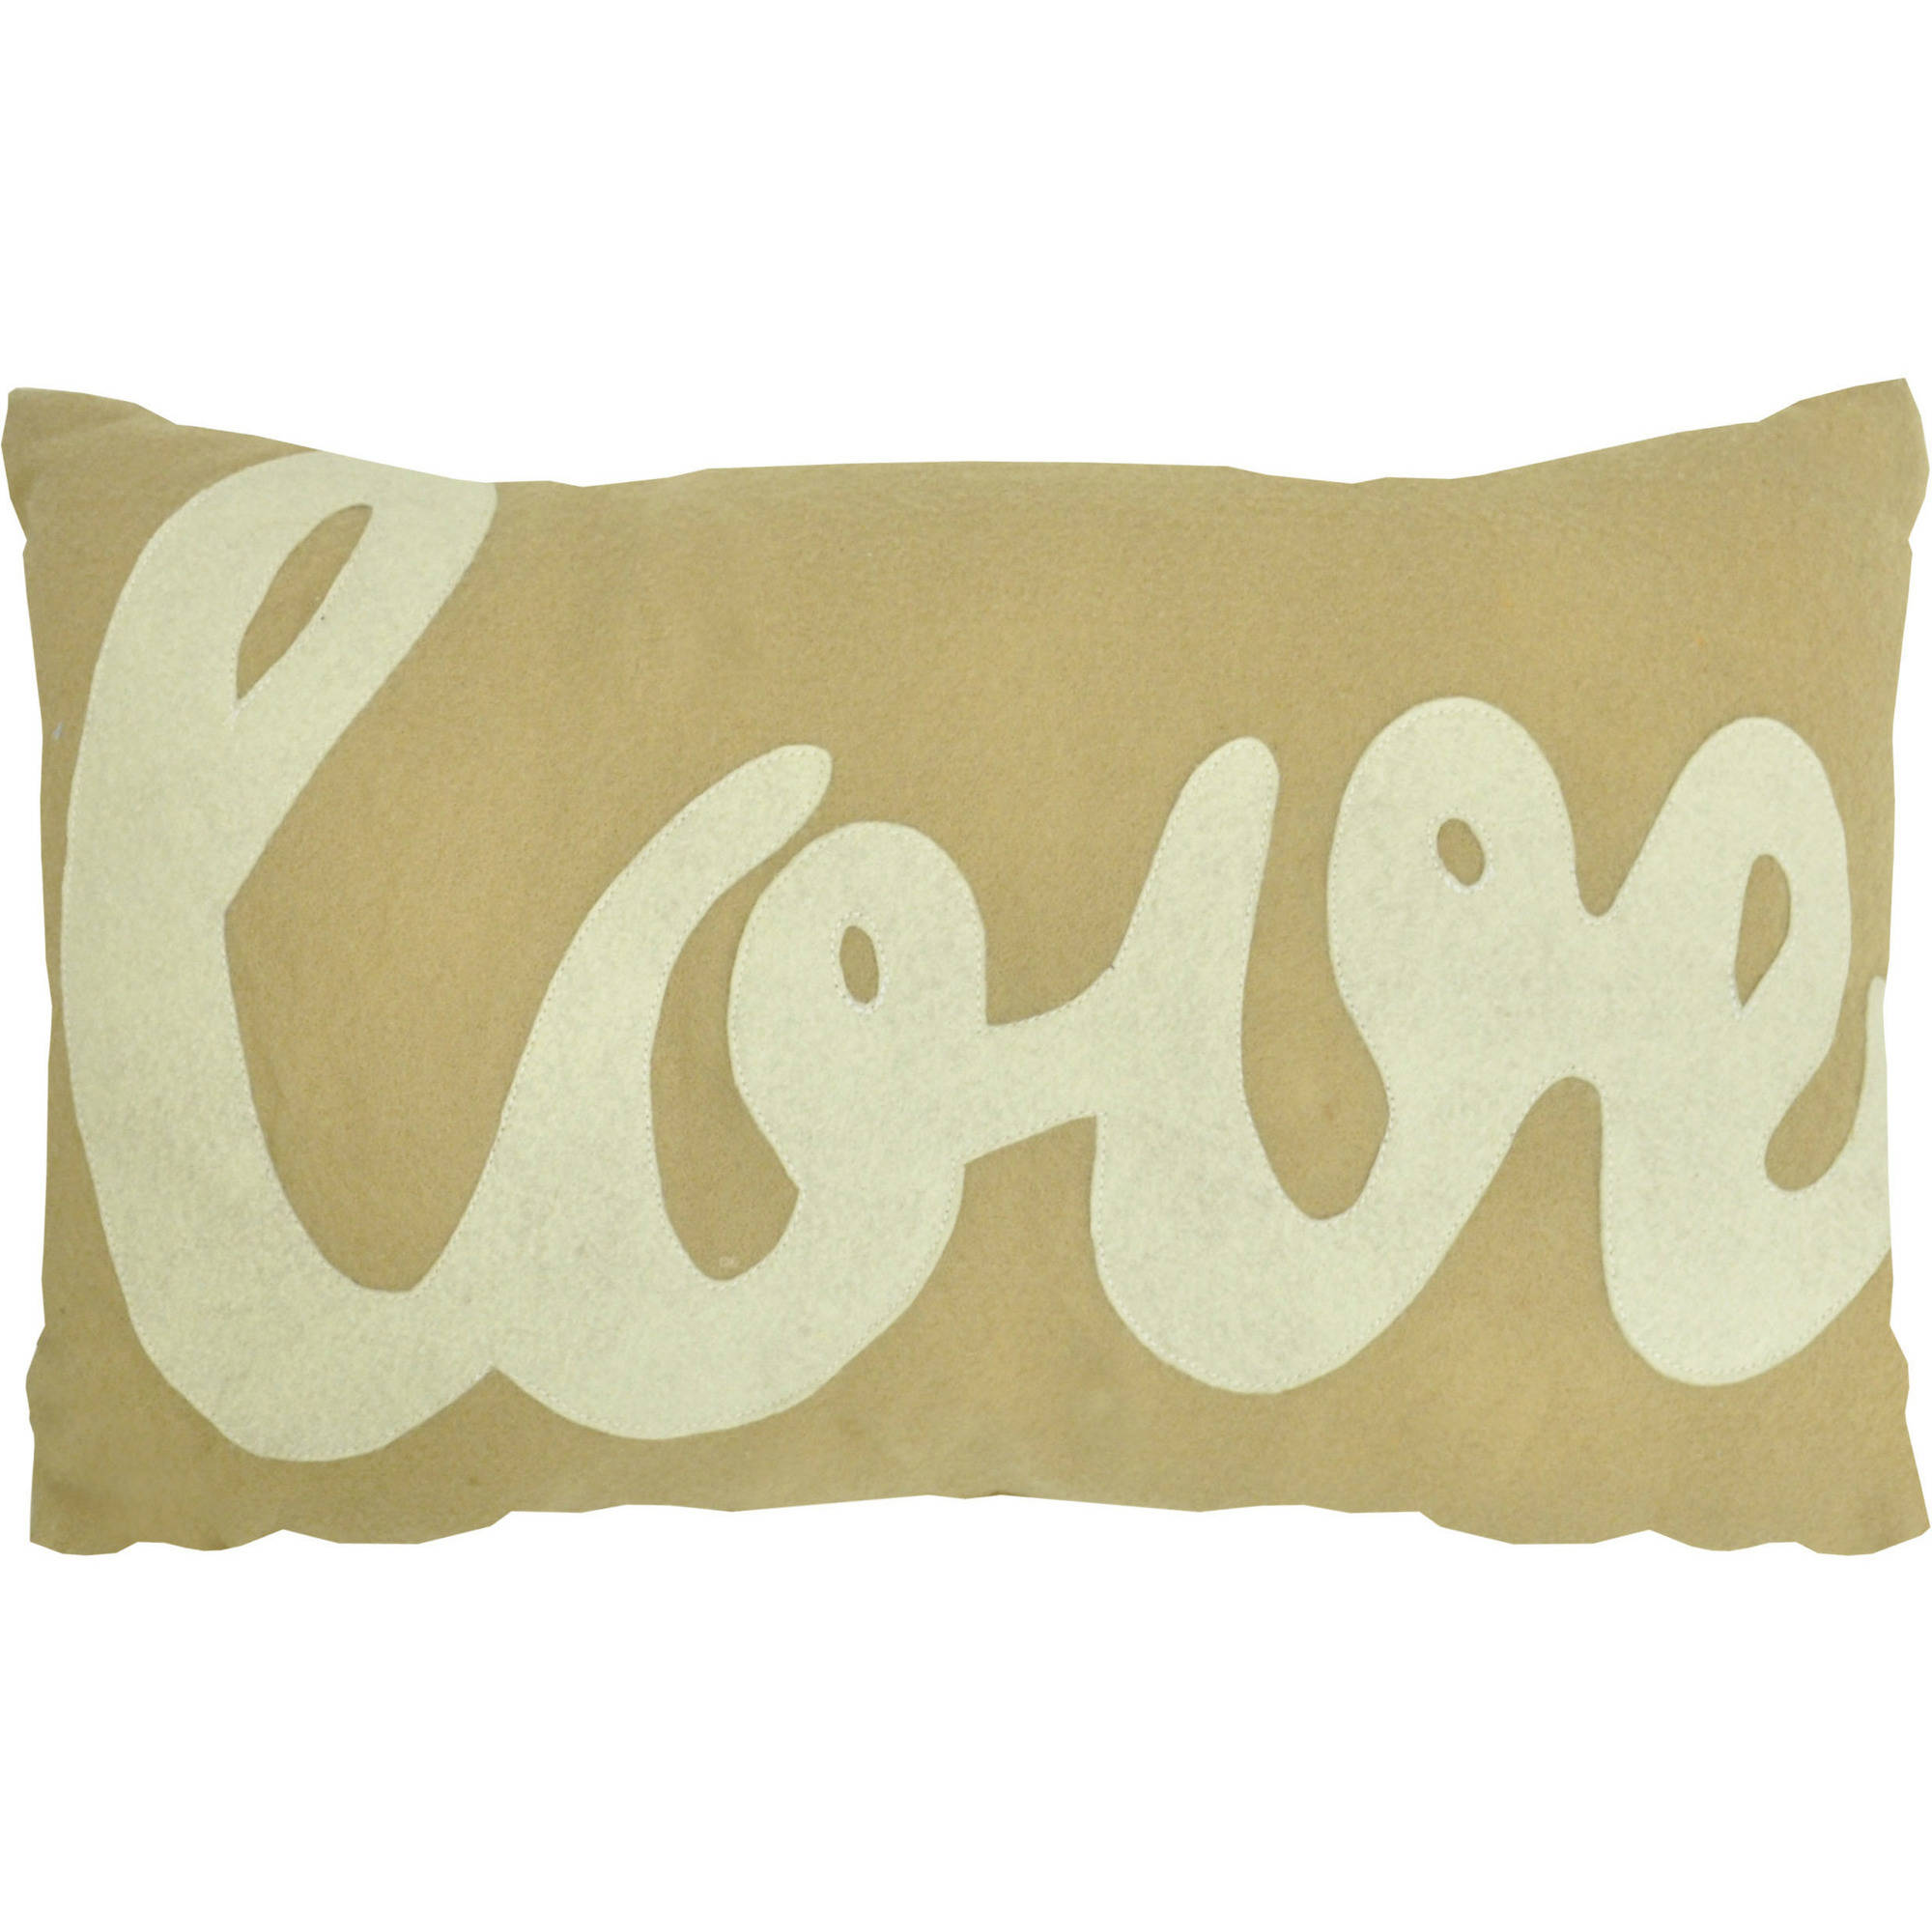 Urban Shop Felt Love Word Decorative Pillow, Taupe with White